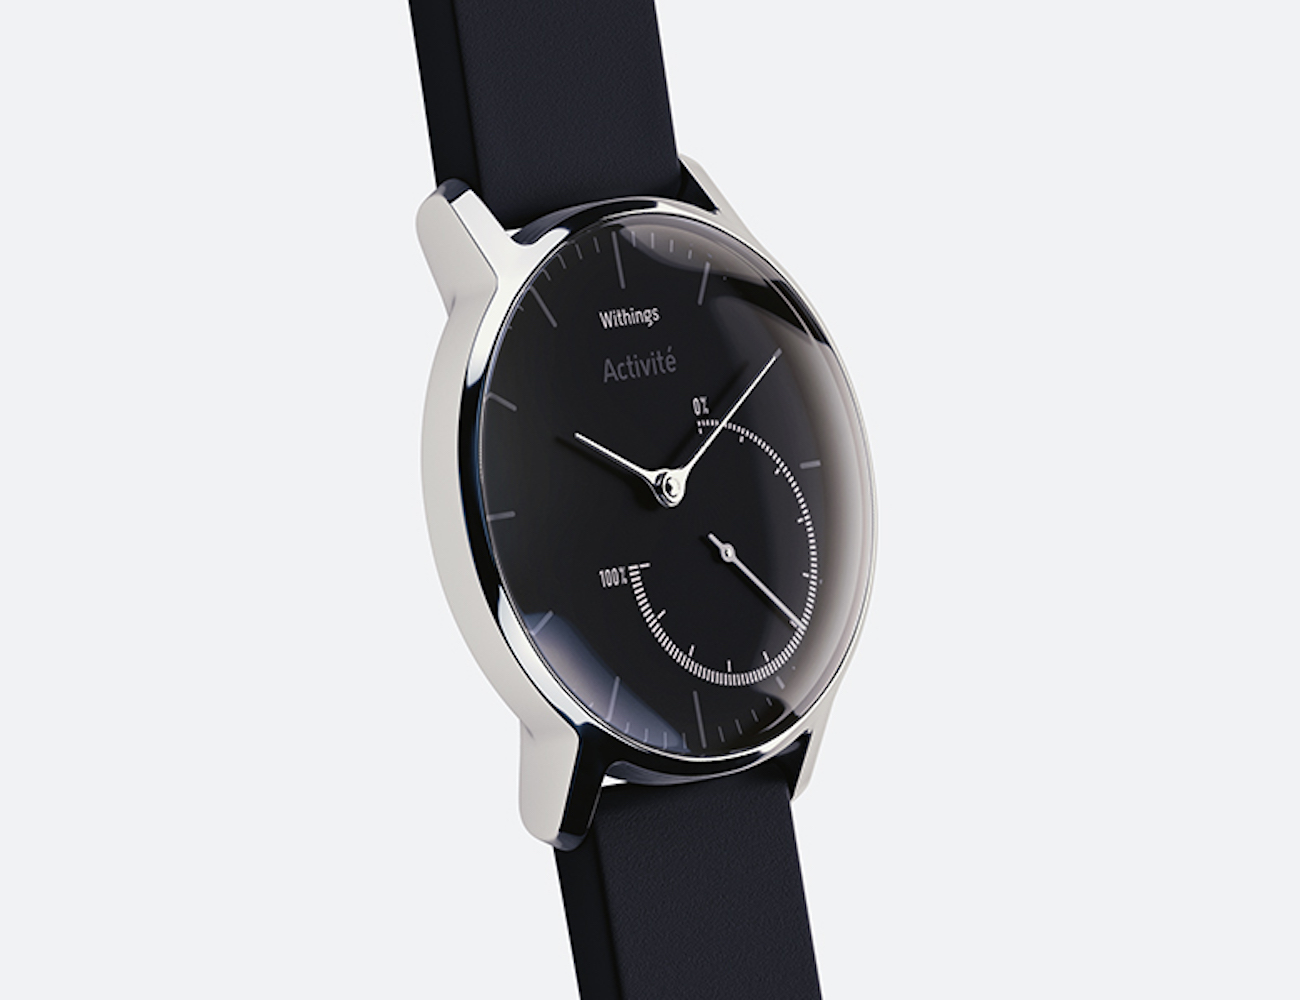 activite-steel-smartwatch-by-withings-02